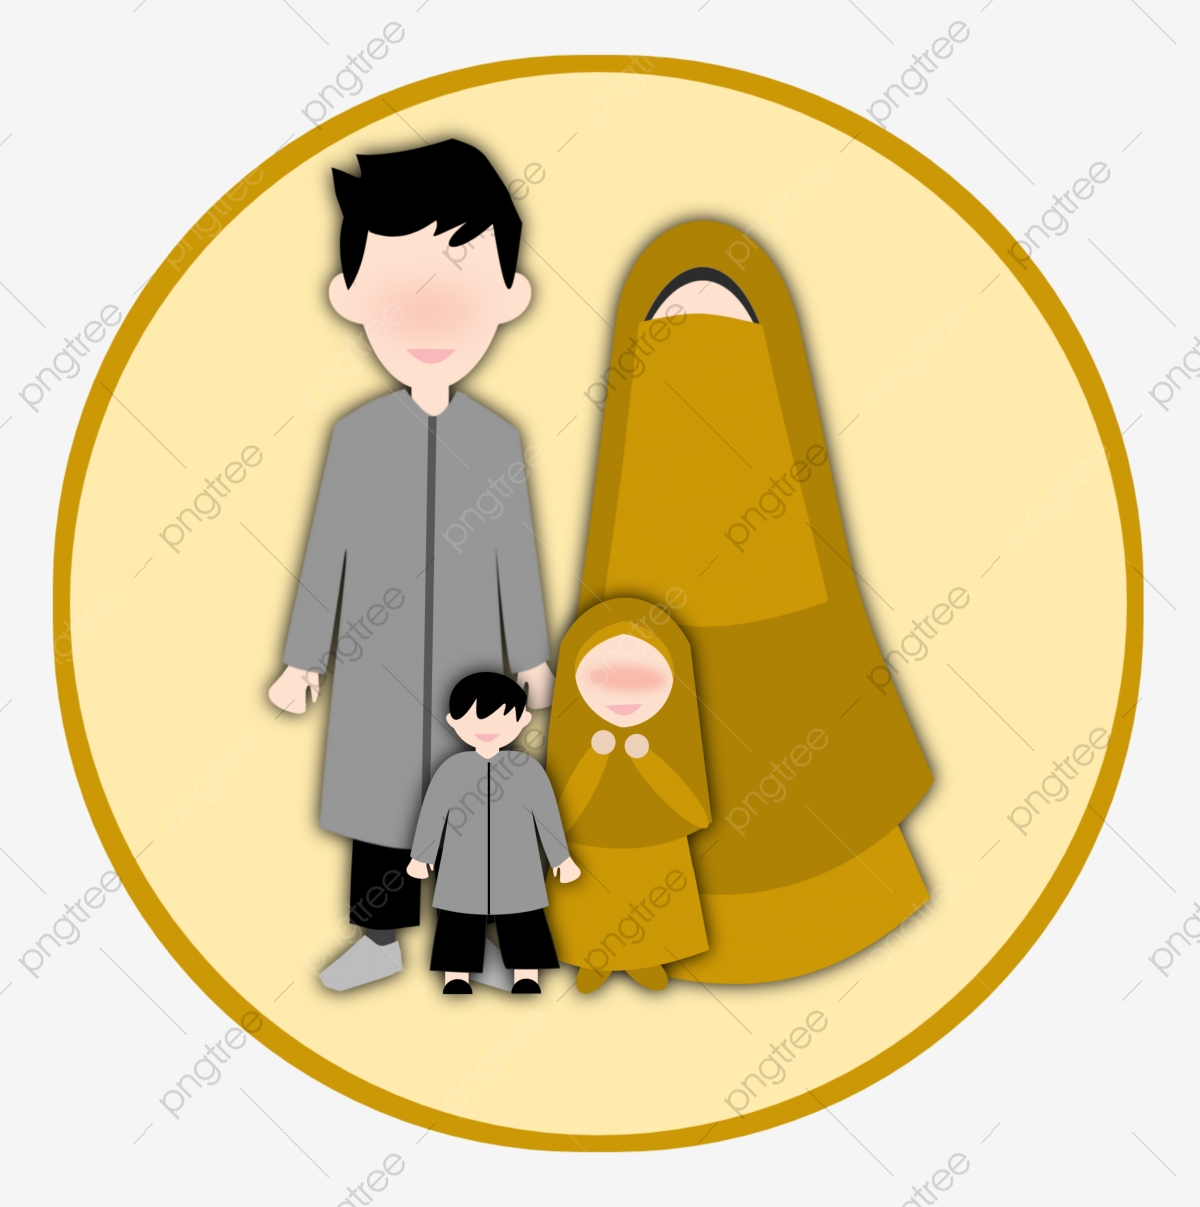 Kartun Muslimah Png Images Vector And Psd Files Free Download On Pngtree